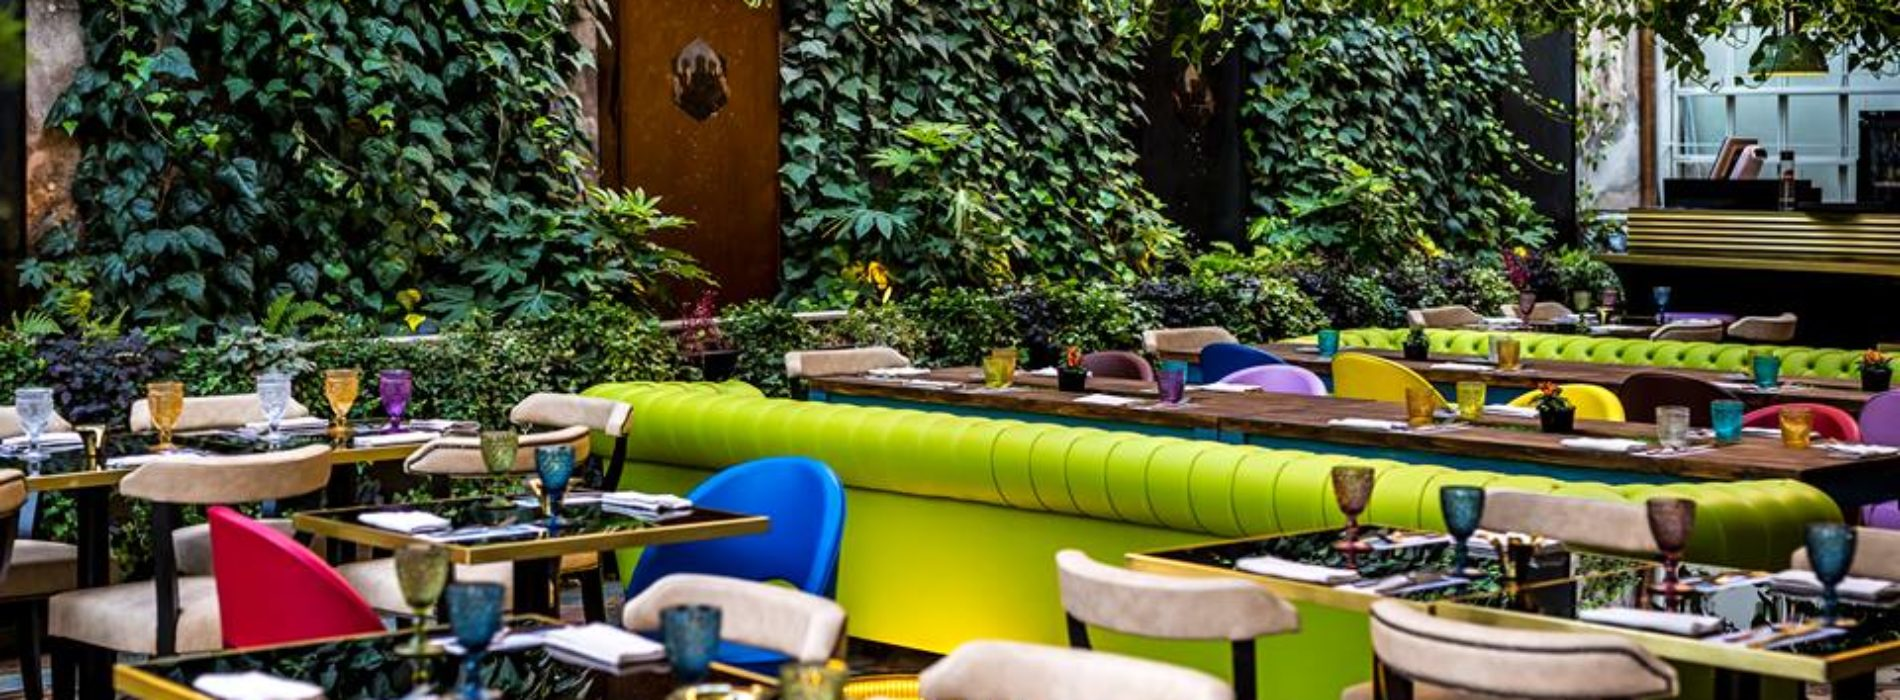 The coolest restaurants in Rome: the addresses you should know about, from Madre's garden to Zuma's terrace to the Asian Art at Le Asiatique